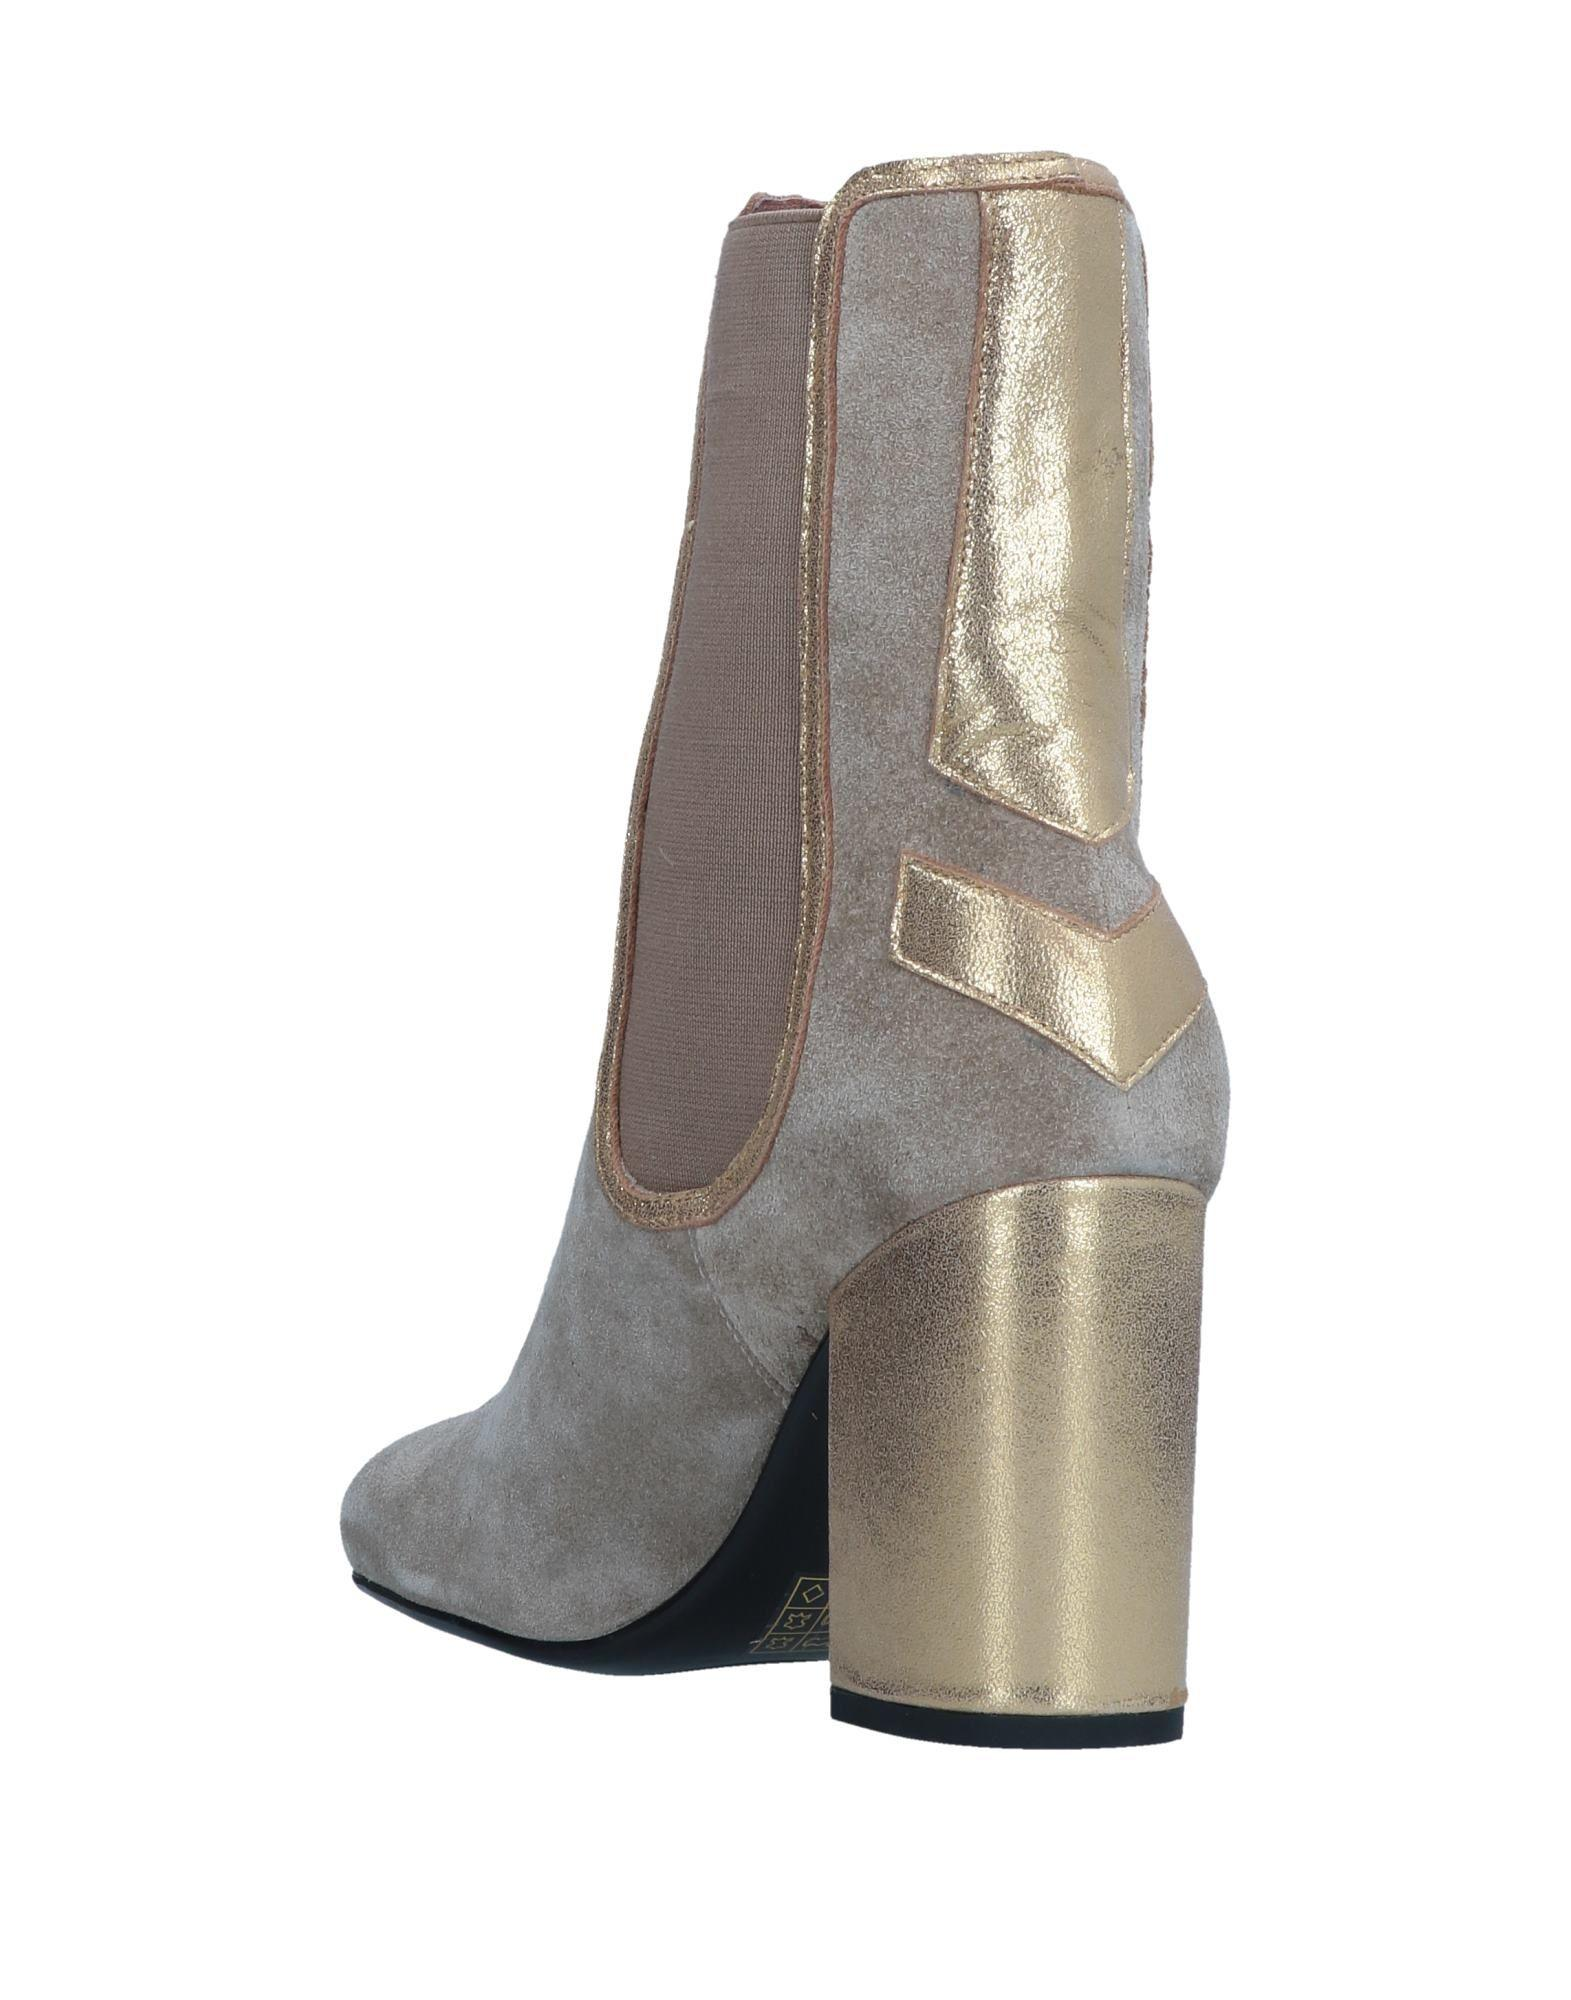 Lola Cruz Ankle Boots in Beige (Natural)